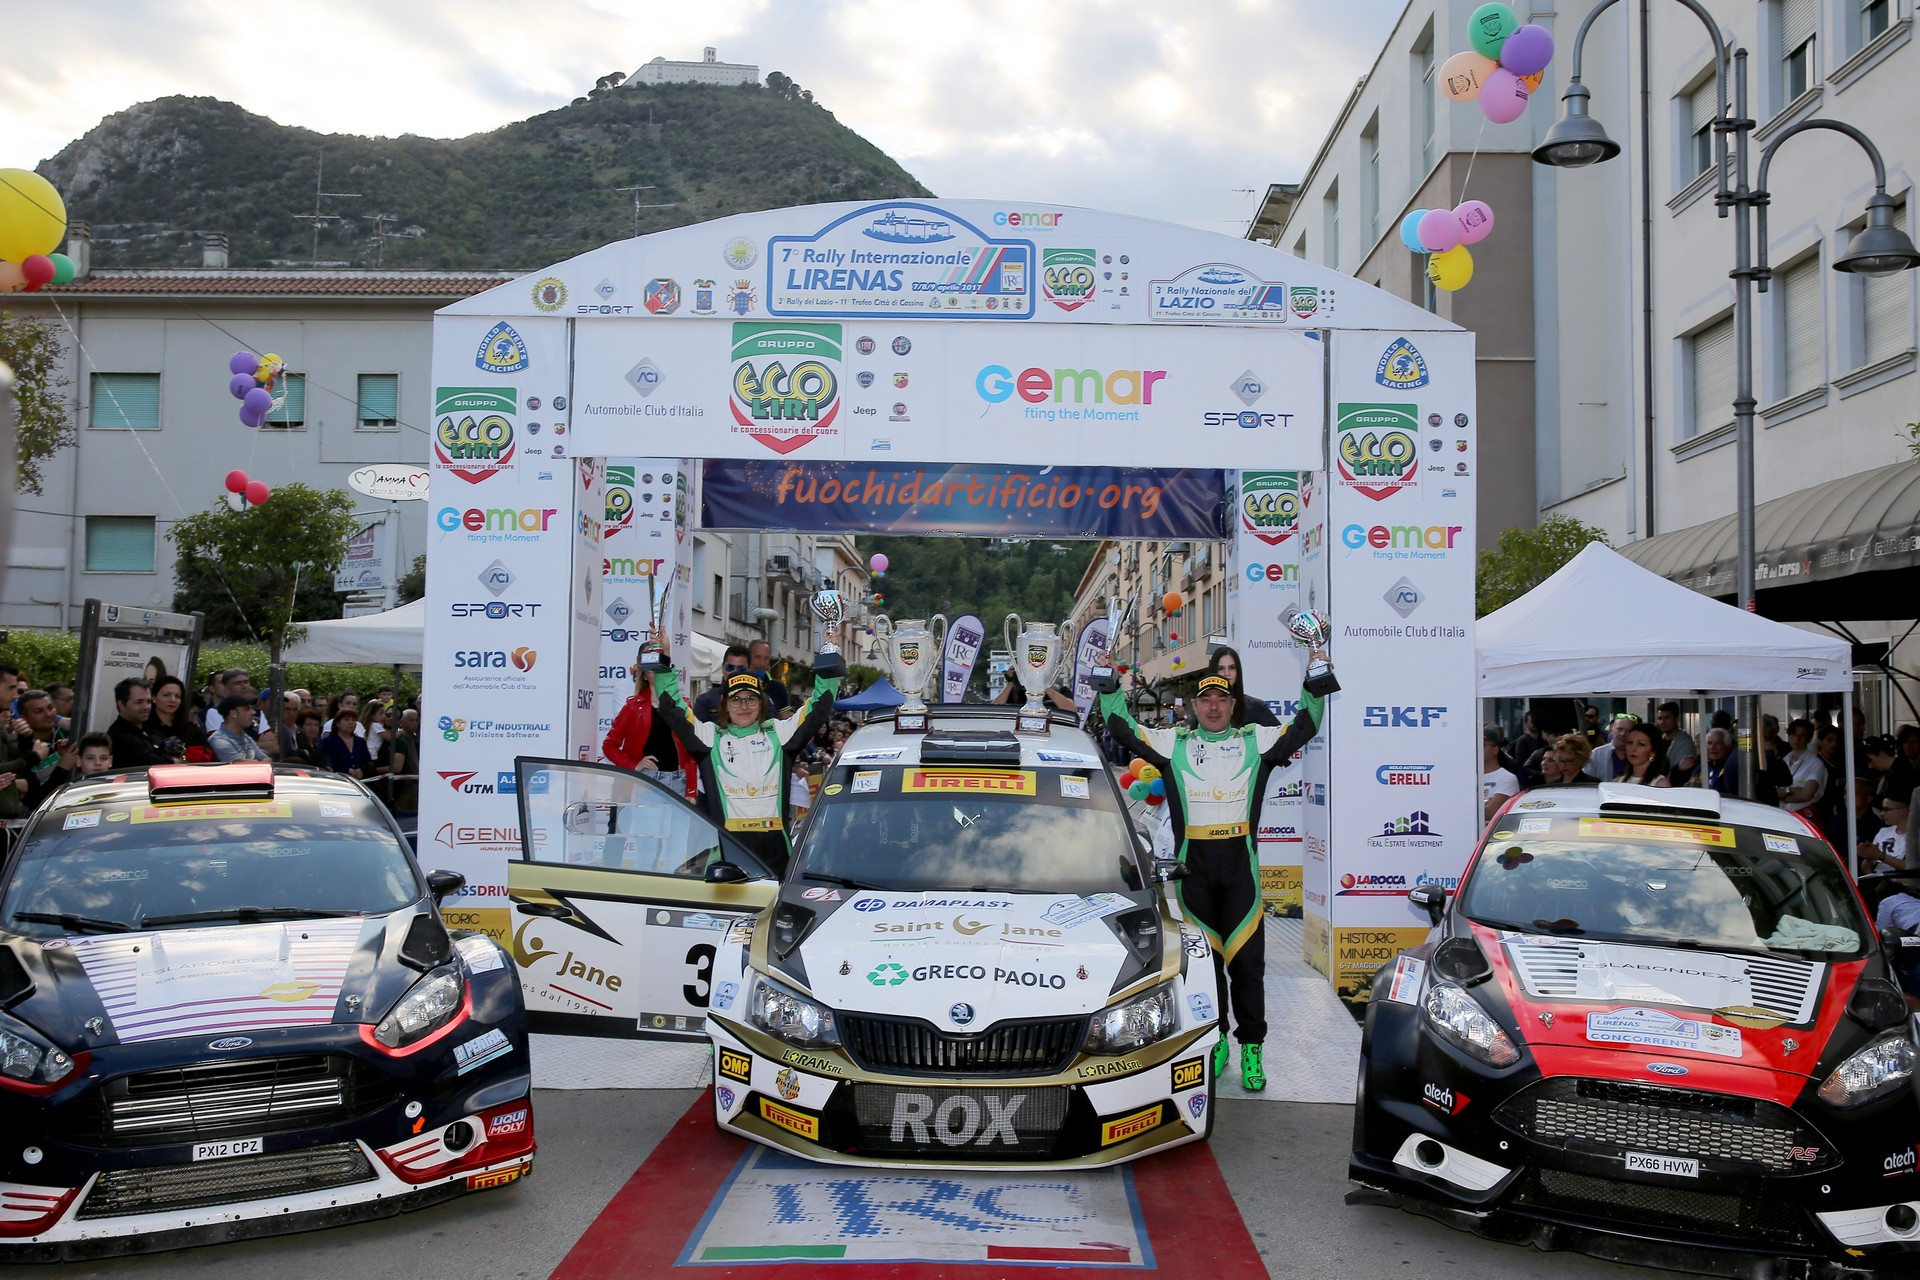 Rossetti-Mori - Rally Internazionale Lirenas IRC (ph. Massimo Bettiol)